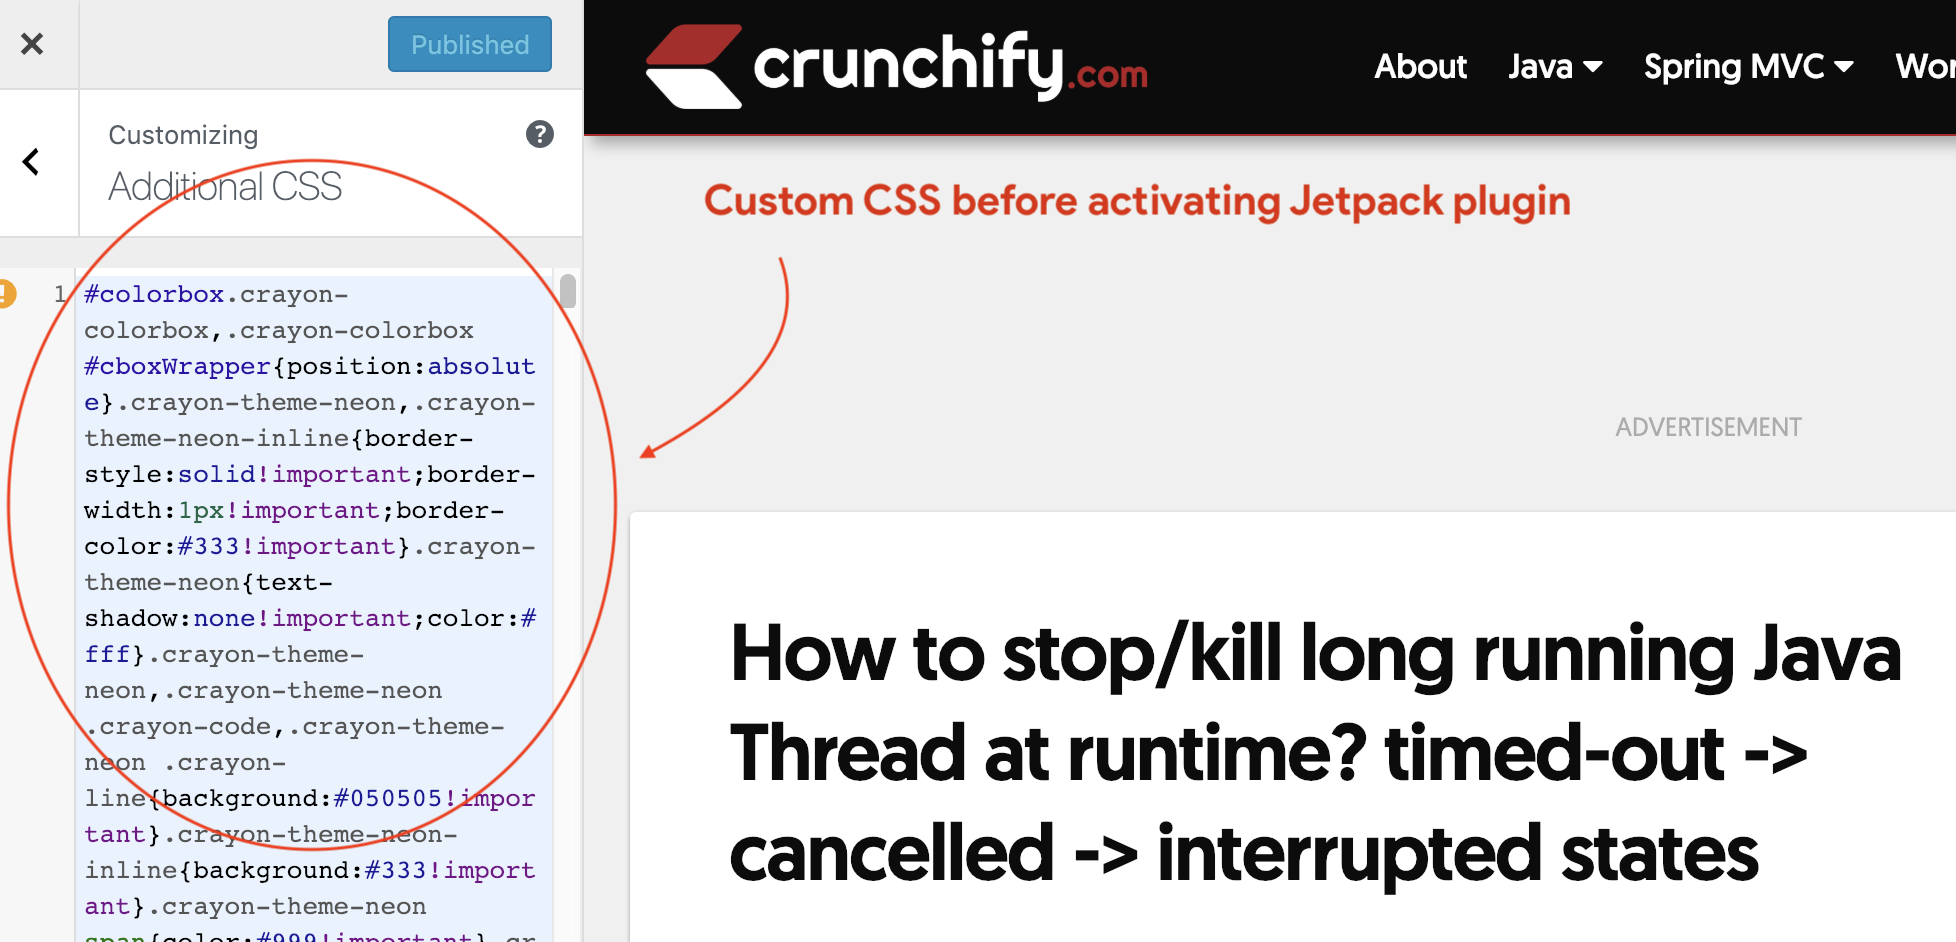 Custom CSS before activating Jetpack plugin